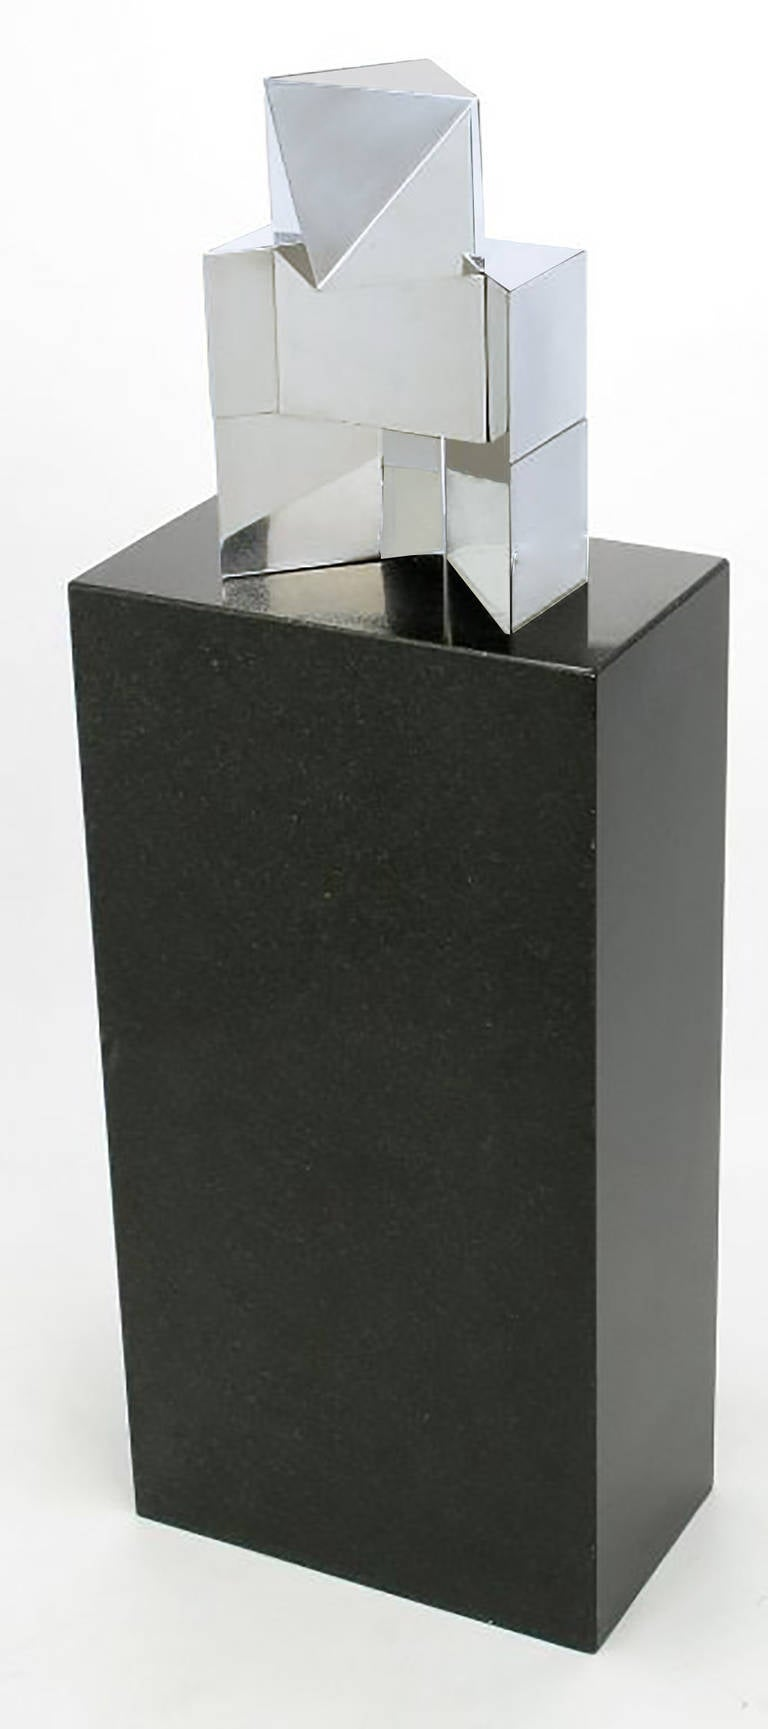 Impressive chromed and incised geometric metal sculpture, on a black granite plinth. Sculpture is signed S. Fernandez Van Den Bussche 1979.